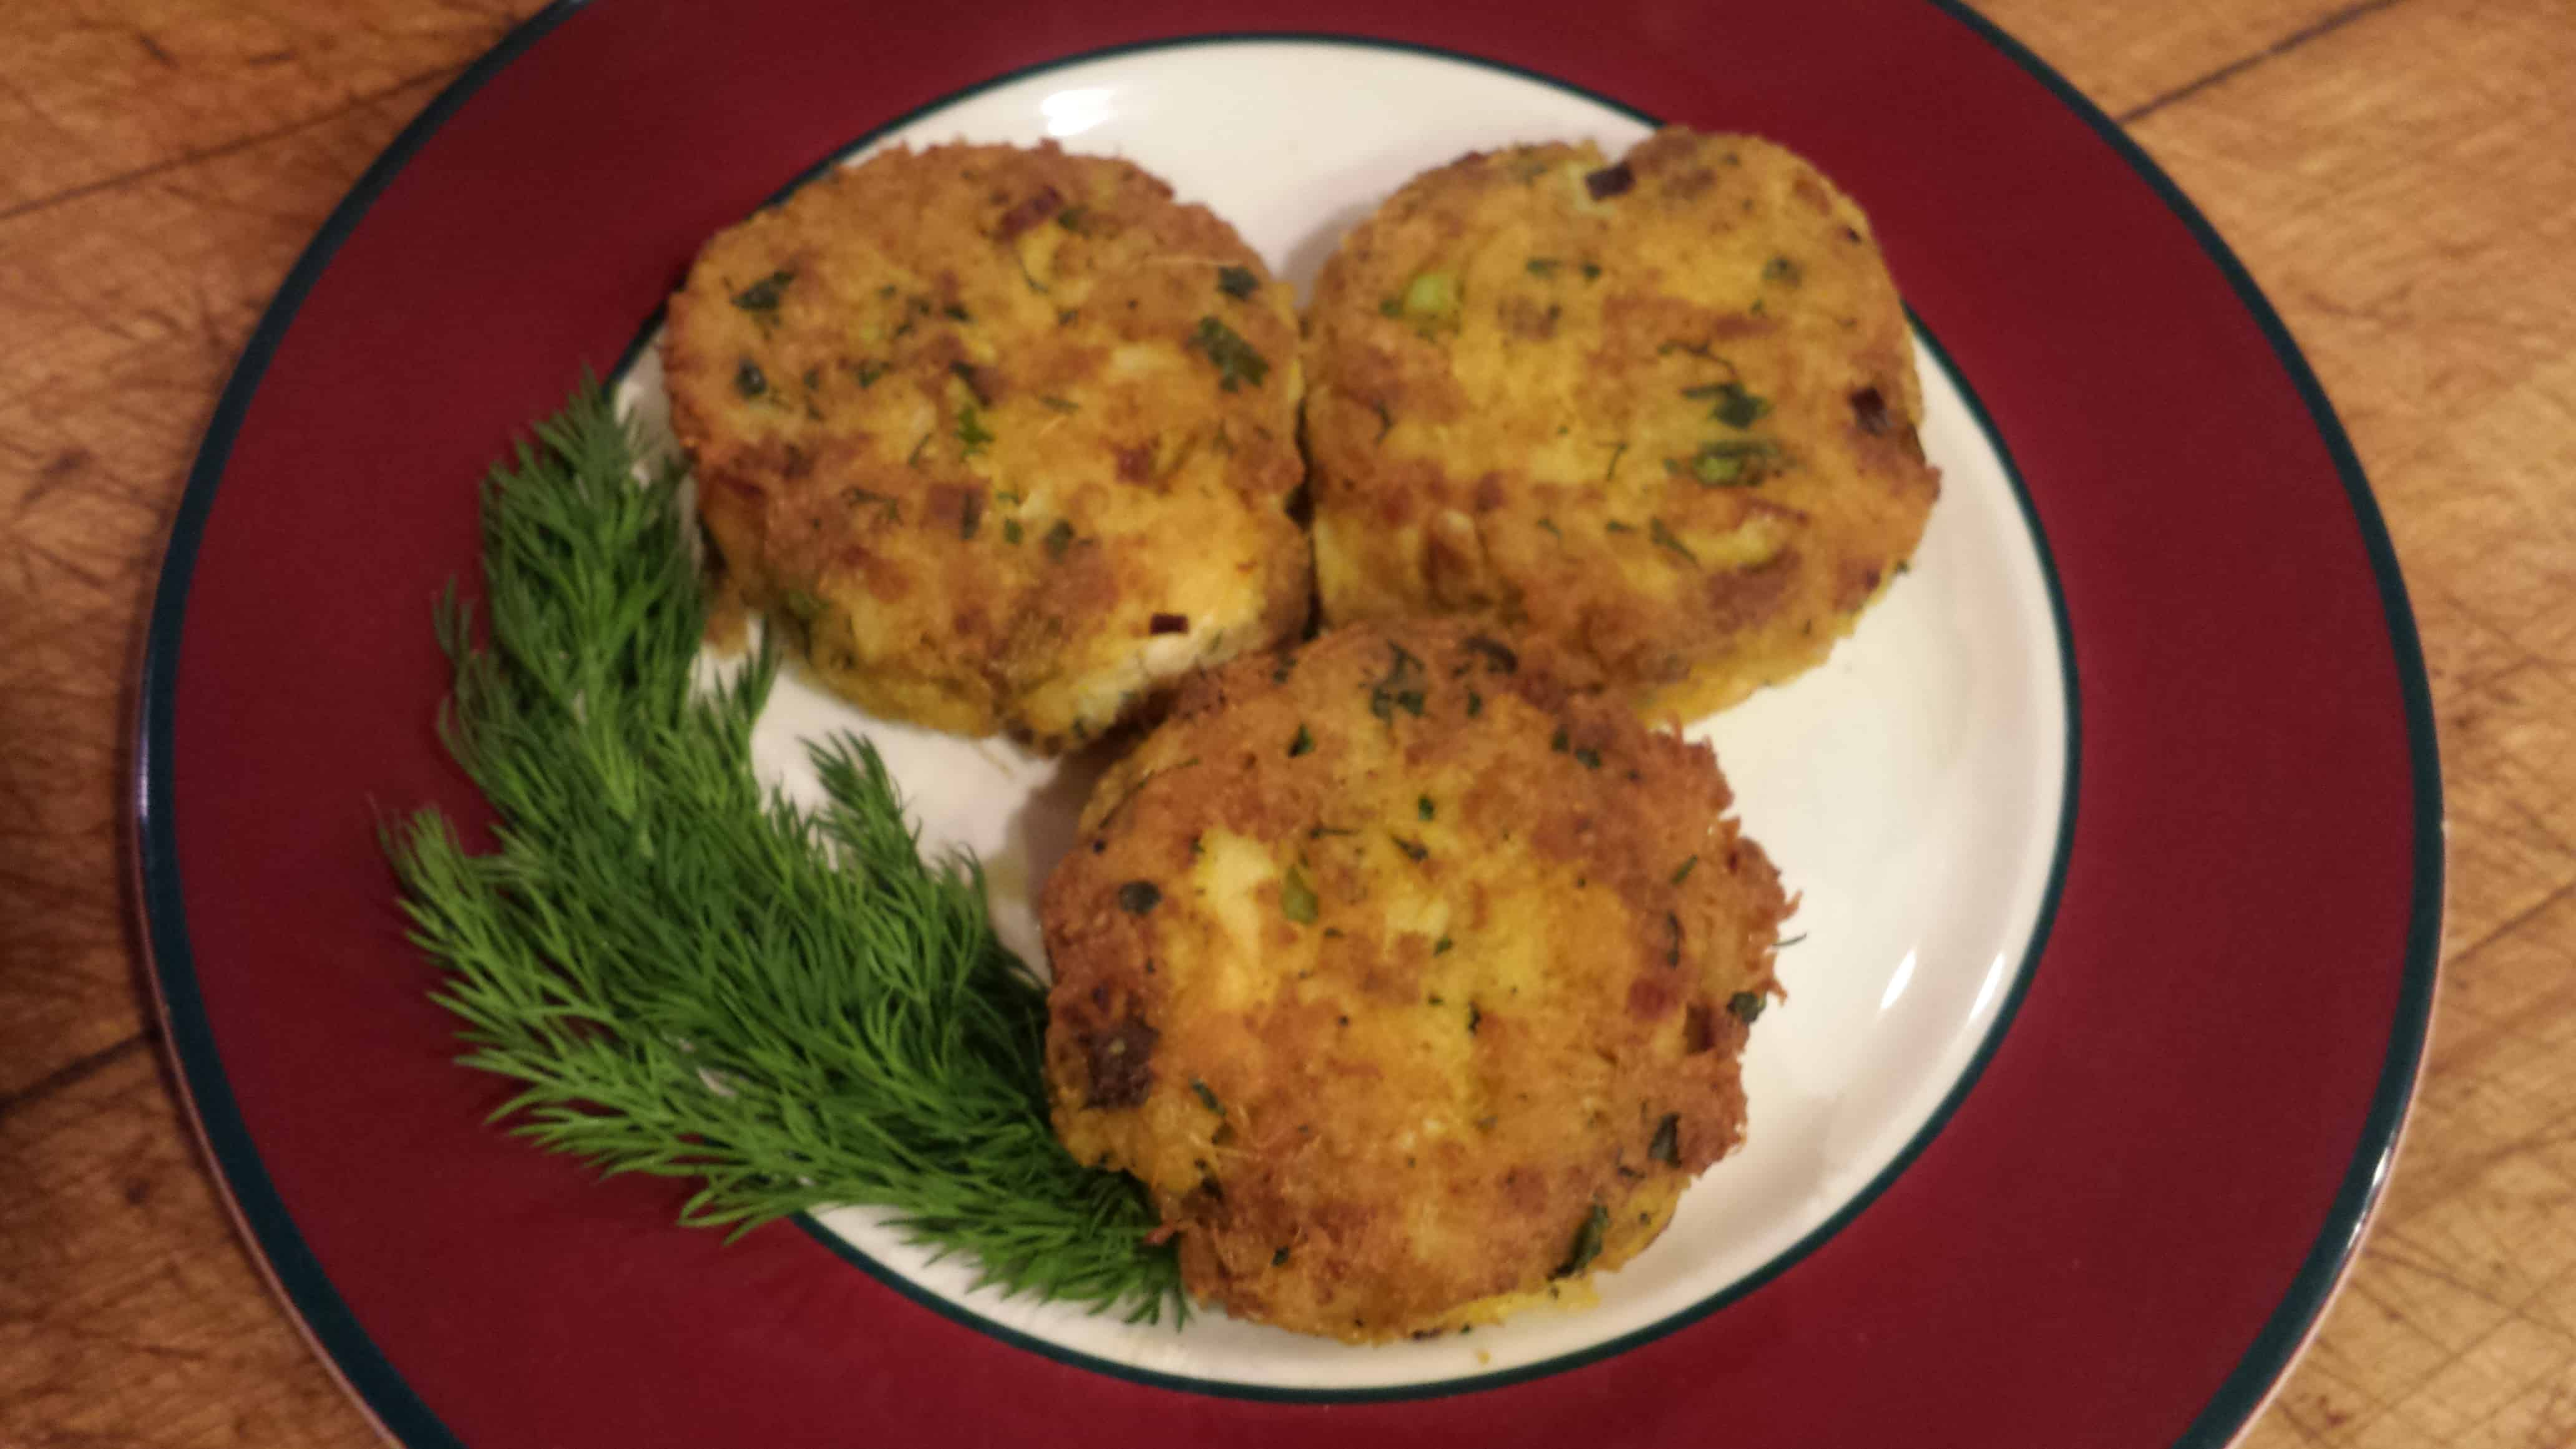 low carb crab cakes recipe - fox hill kitchens - home of vermont